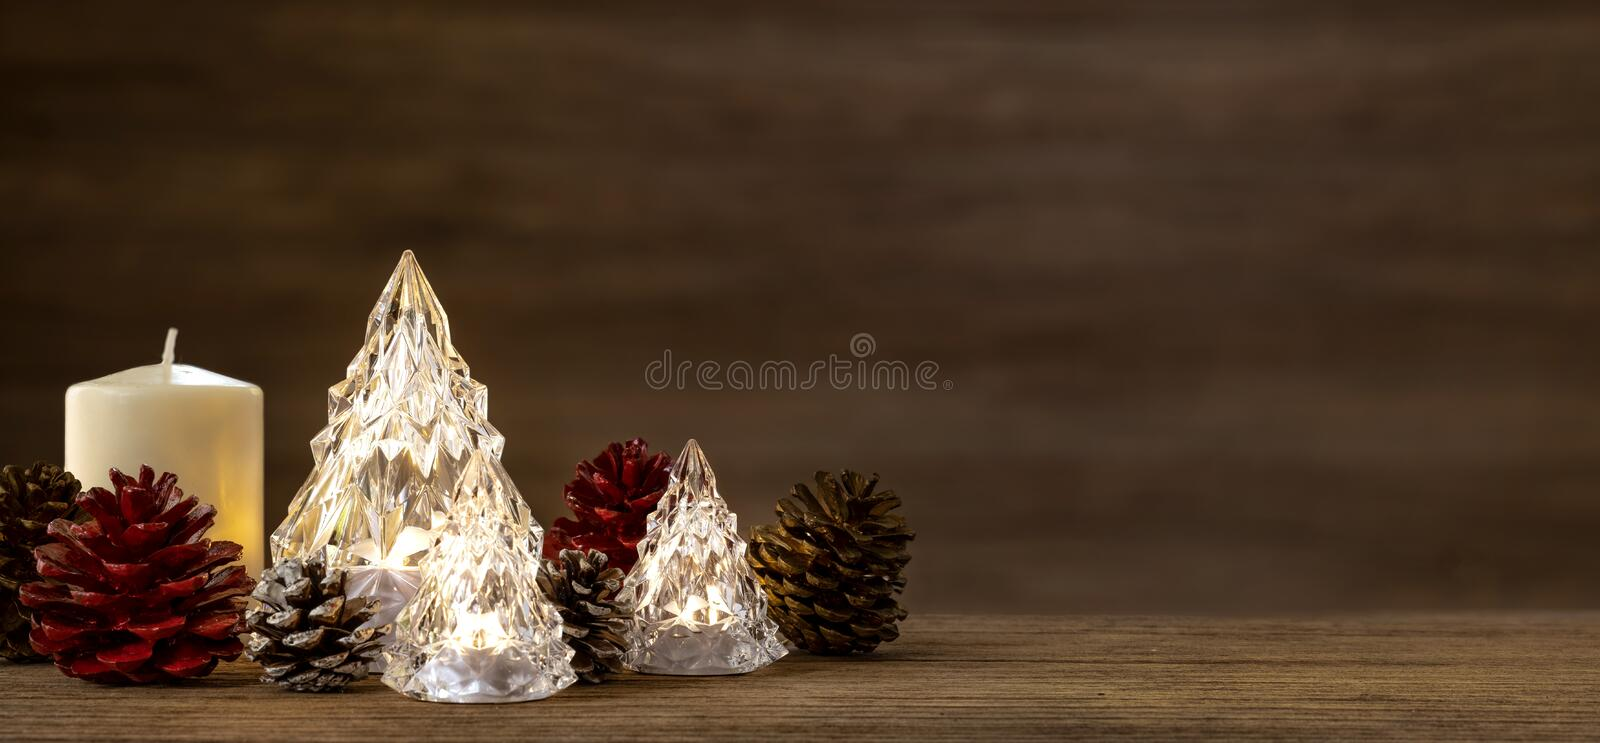 Modern glass Christmas tree with lights on dark wood table with wall for merry chirstmas and new year holiday greeting card royalty free stock photos